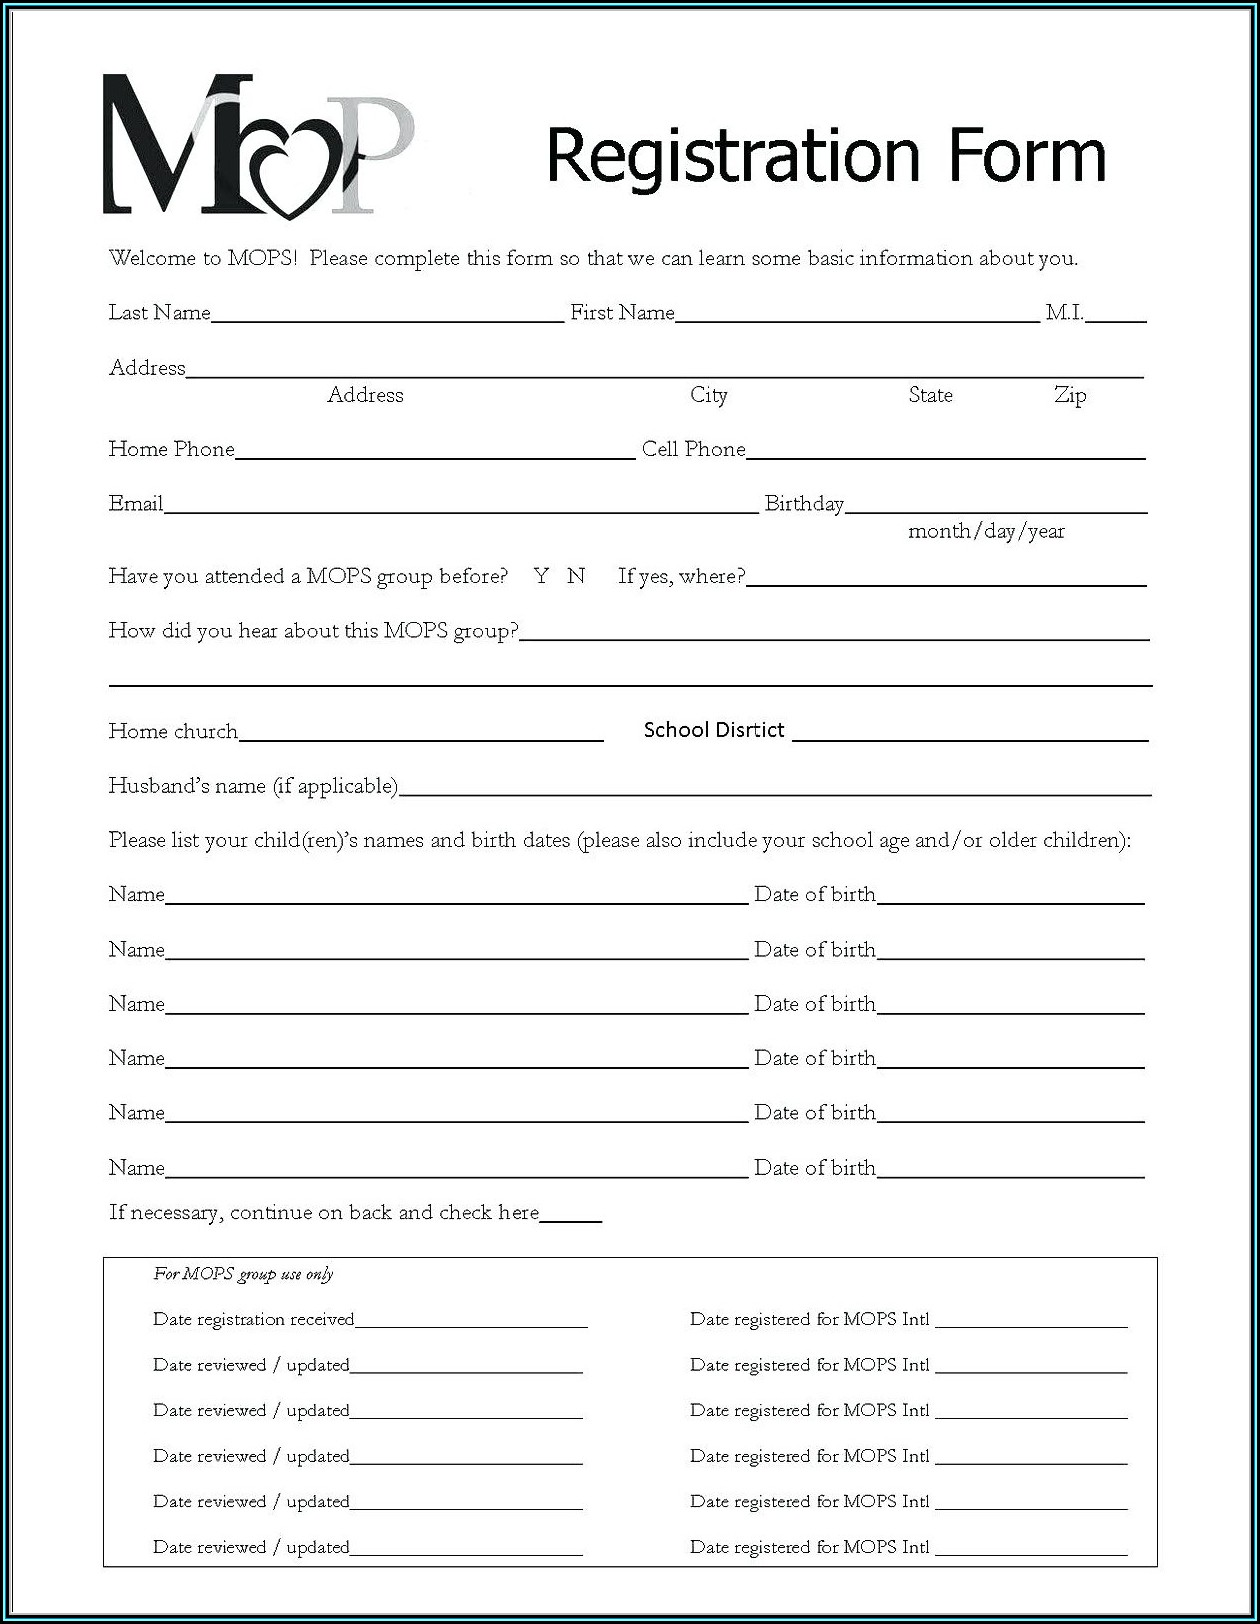 California Association Of Realtors Rental Application Form